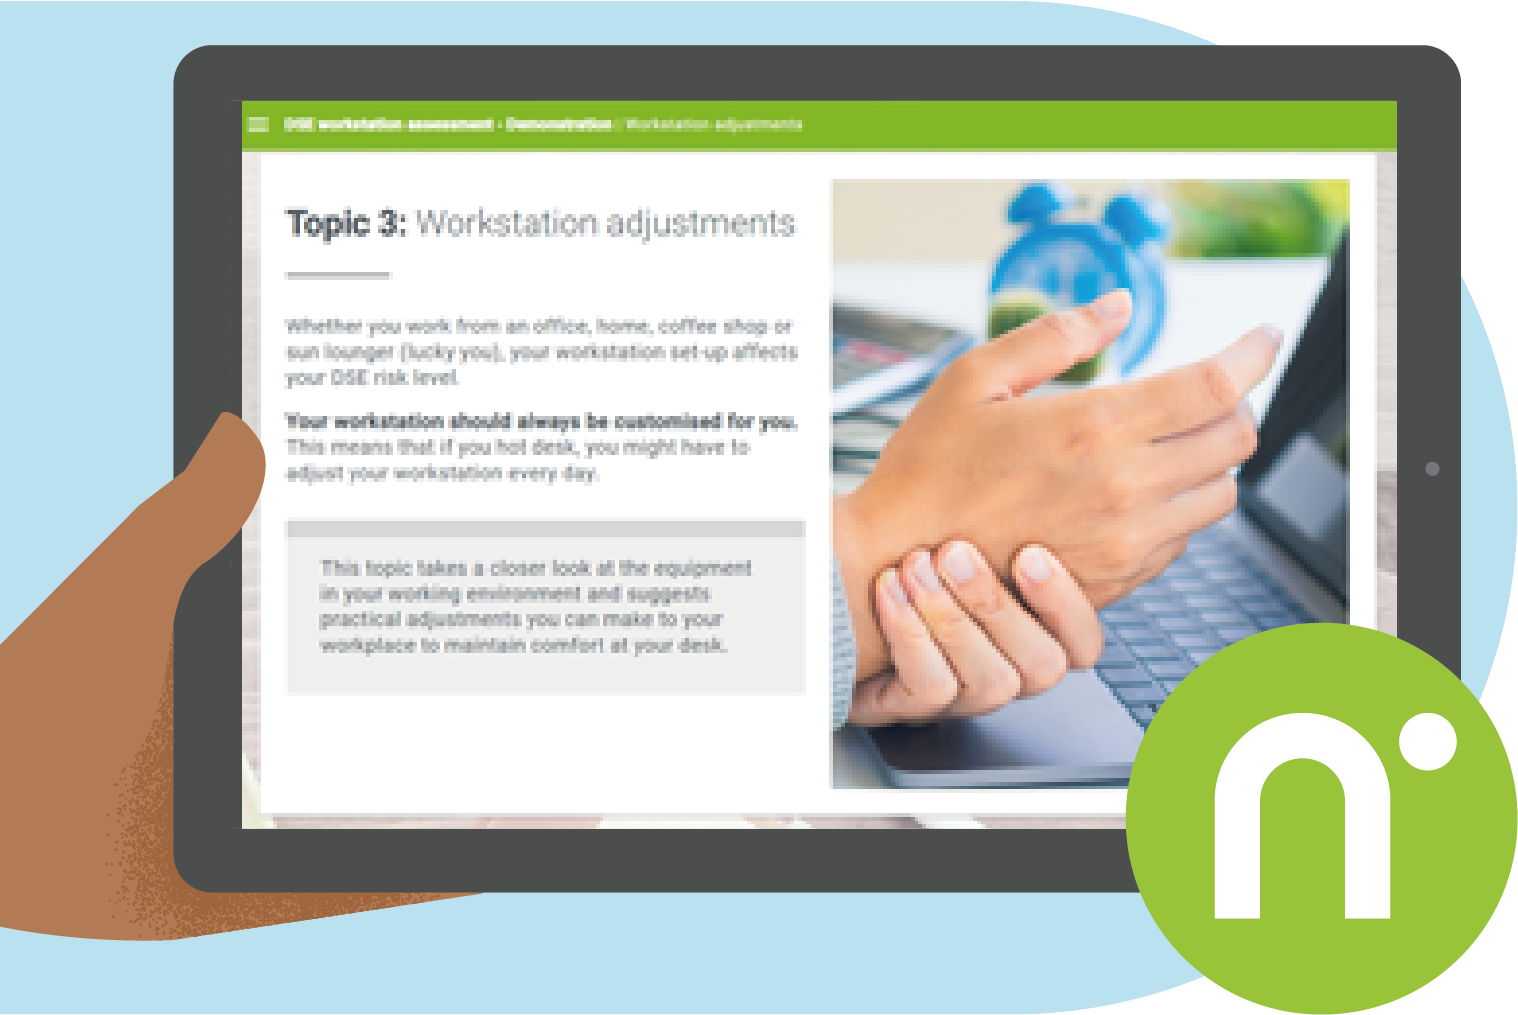 Providing a straightforward elearning course is a great starting point